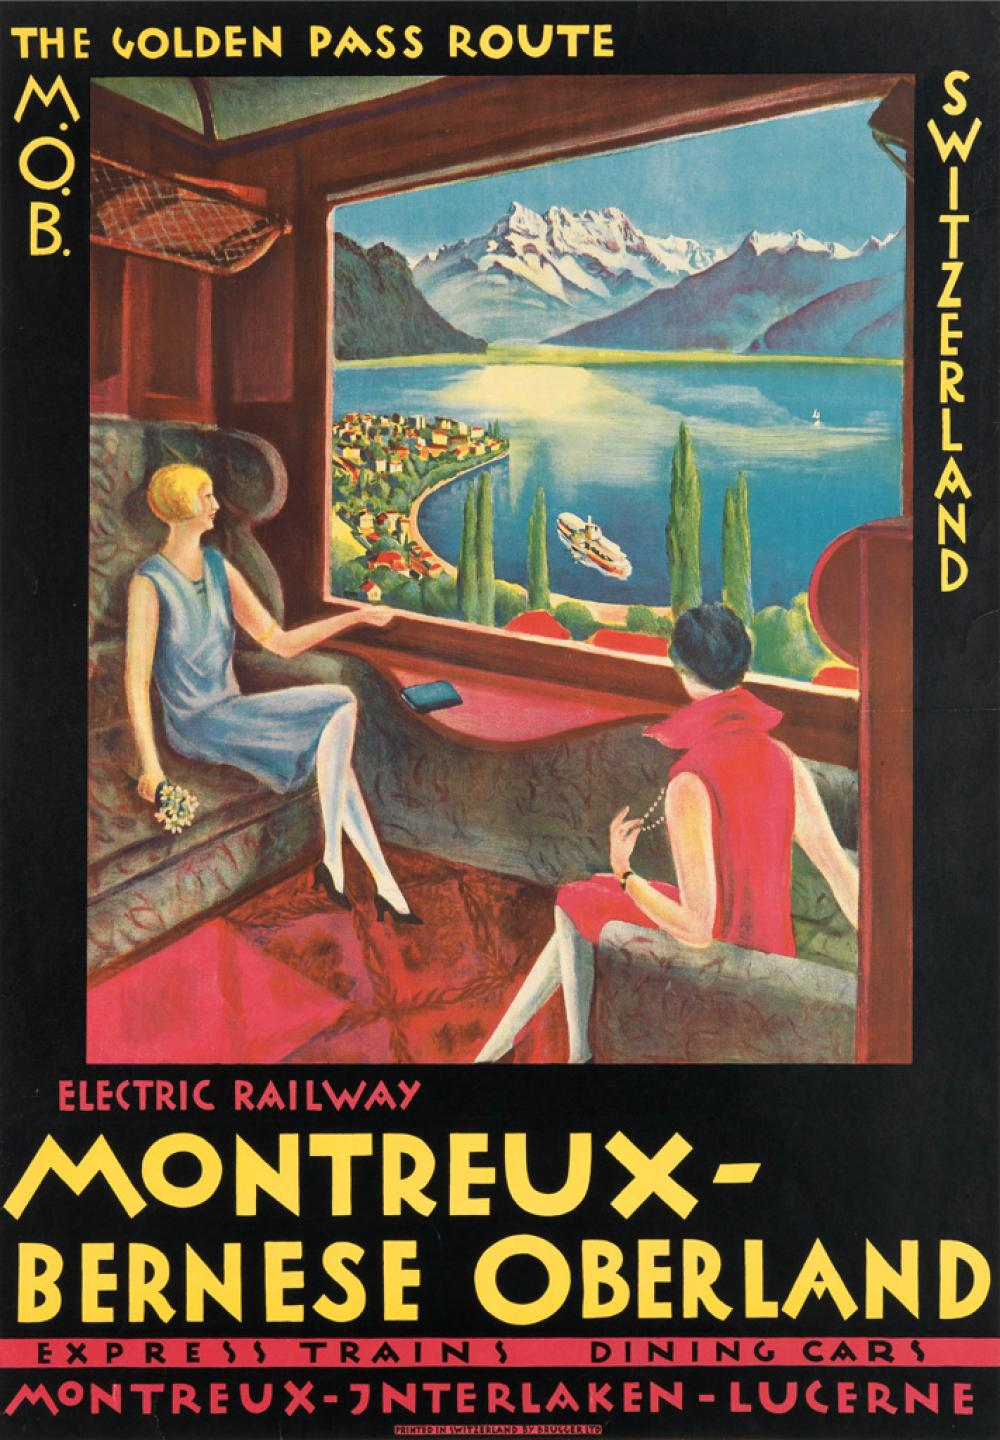 DESIGNER UNKNOWN. MONTREUX - BERNESE OBERLAND / THE GOLDEN PASS ROUTE. 1921. 38x27 inches, 98x68 cm. Brugger Ltd., [Meiringen.]